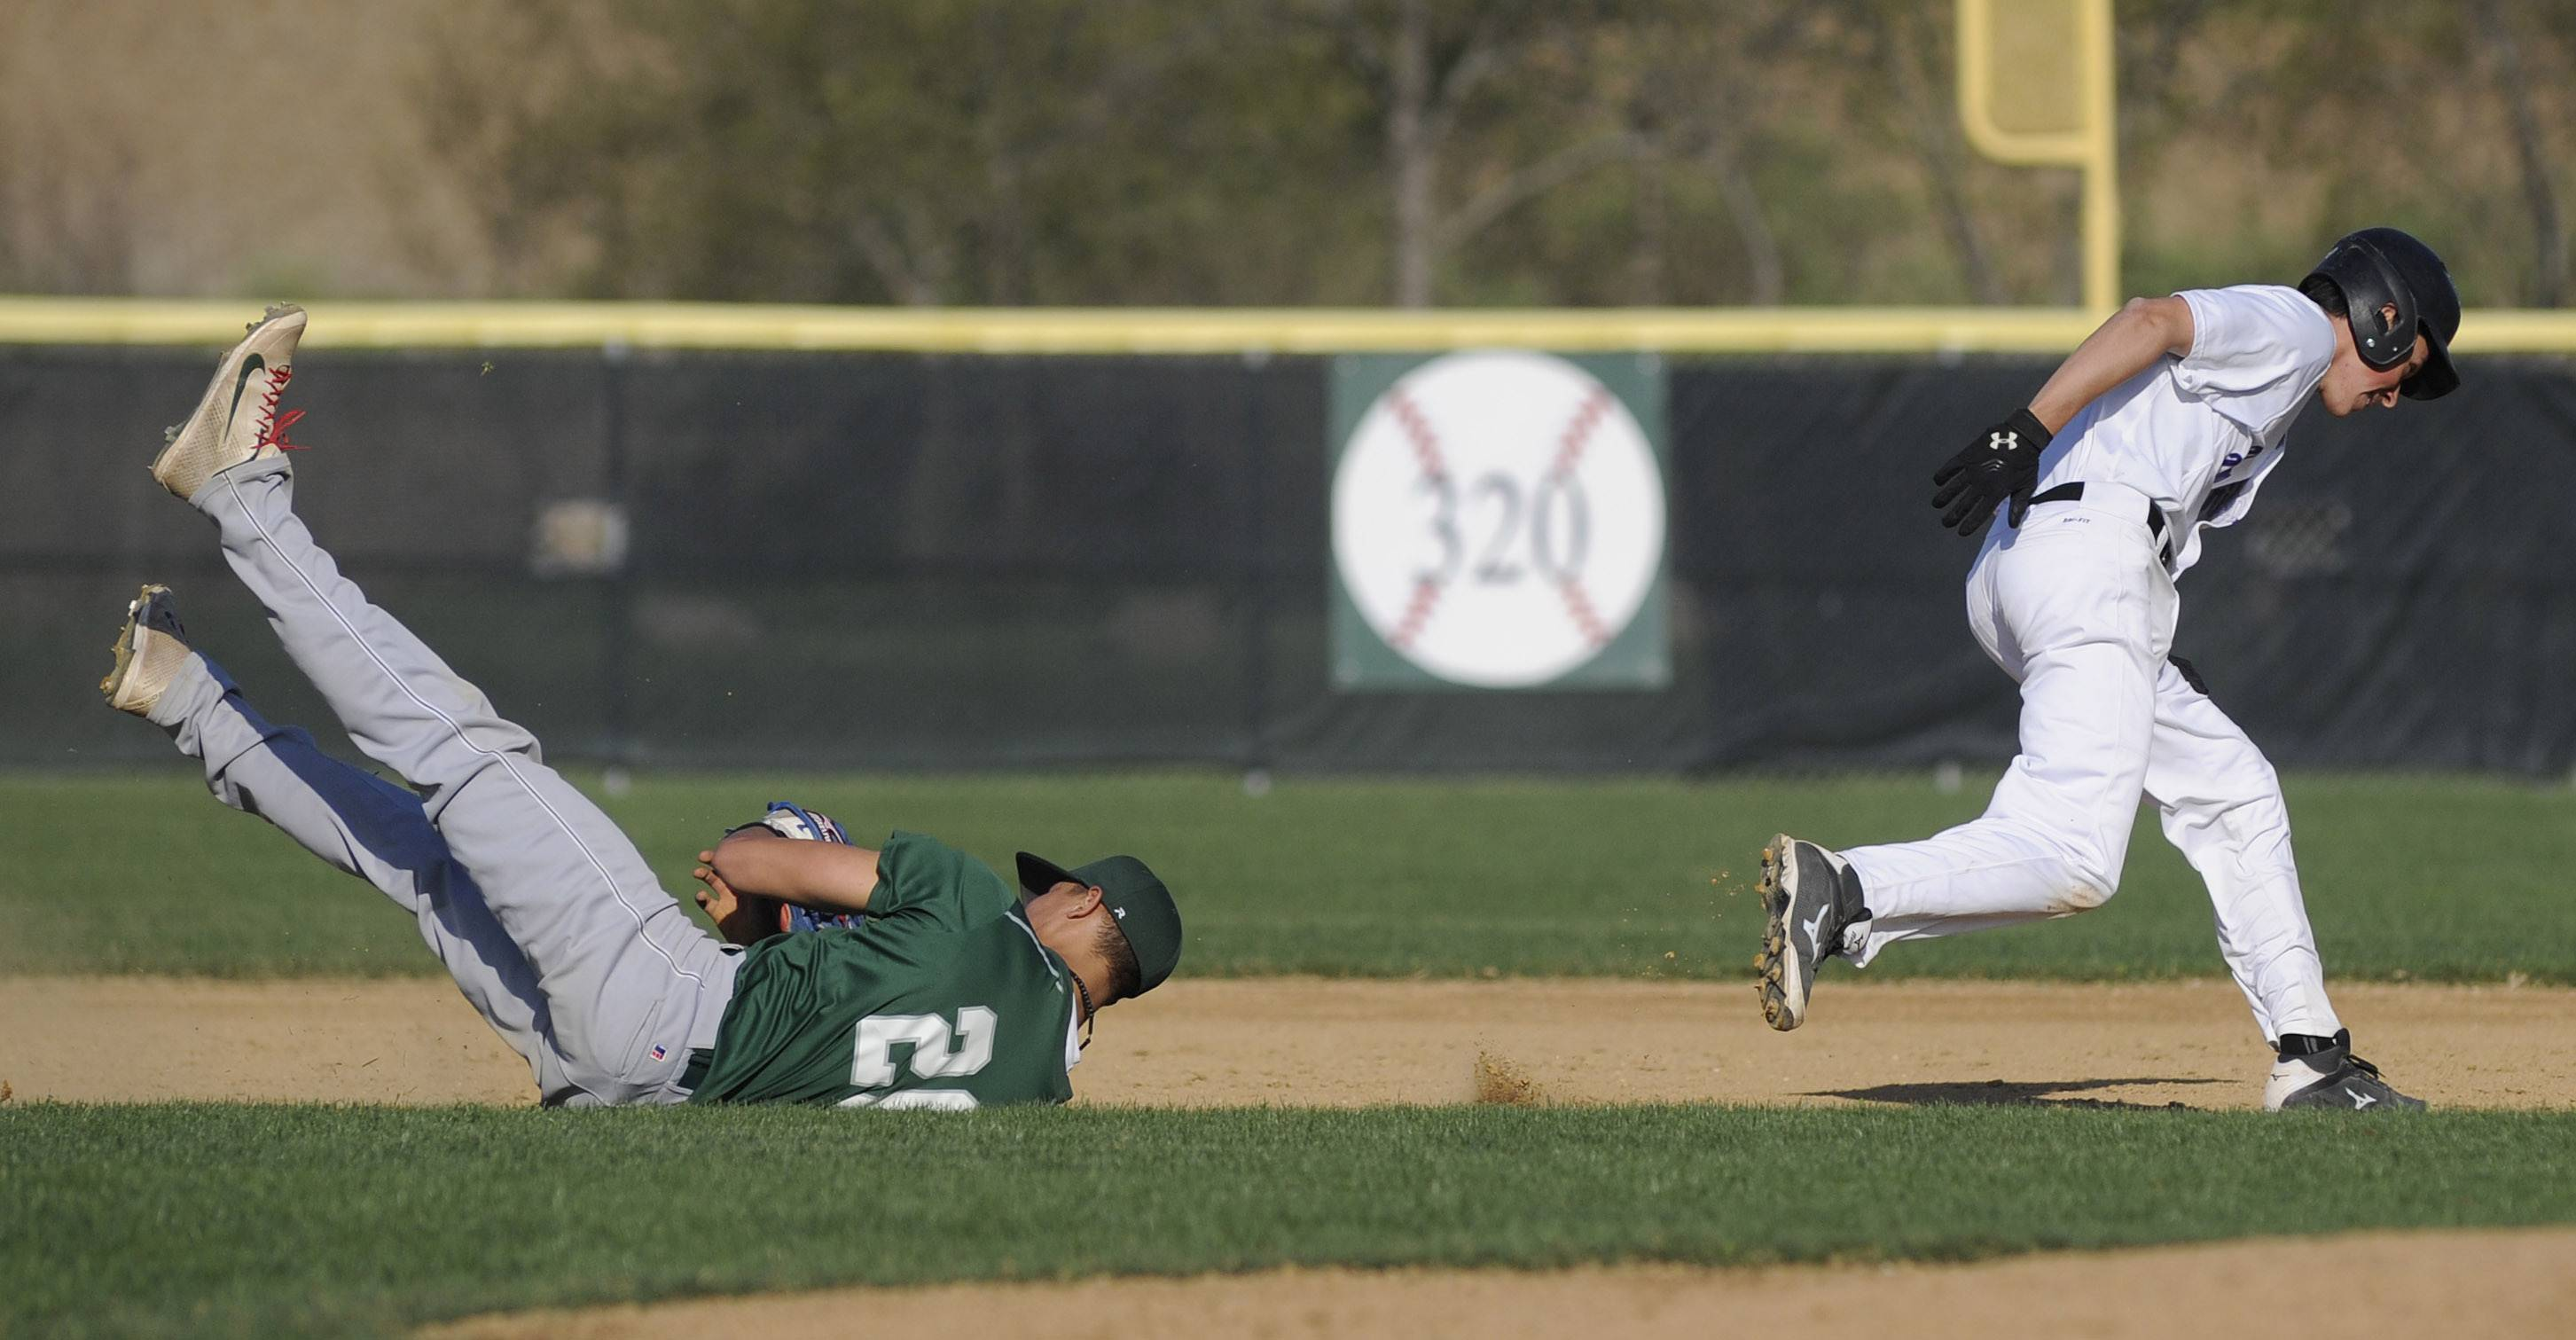 Grayslake Central's Freddie Landers tumbles to the ground after tagging out Hampshire's Alex Bahnick after chasing him between first and second base at Hampshire Friday.